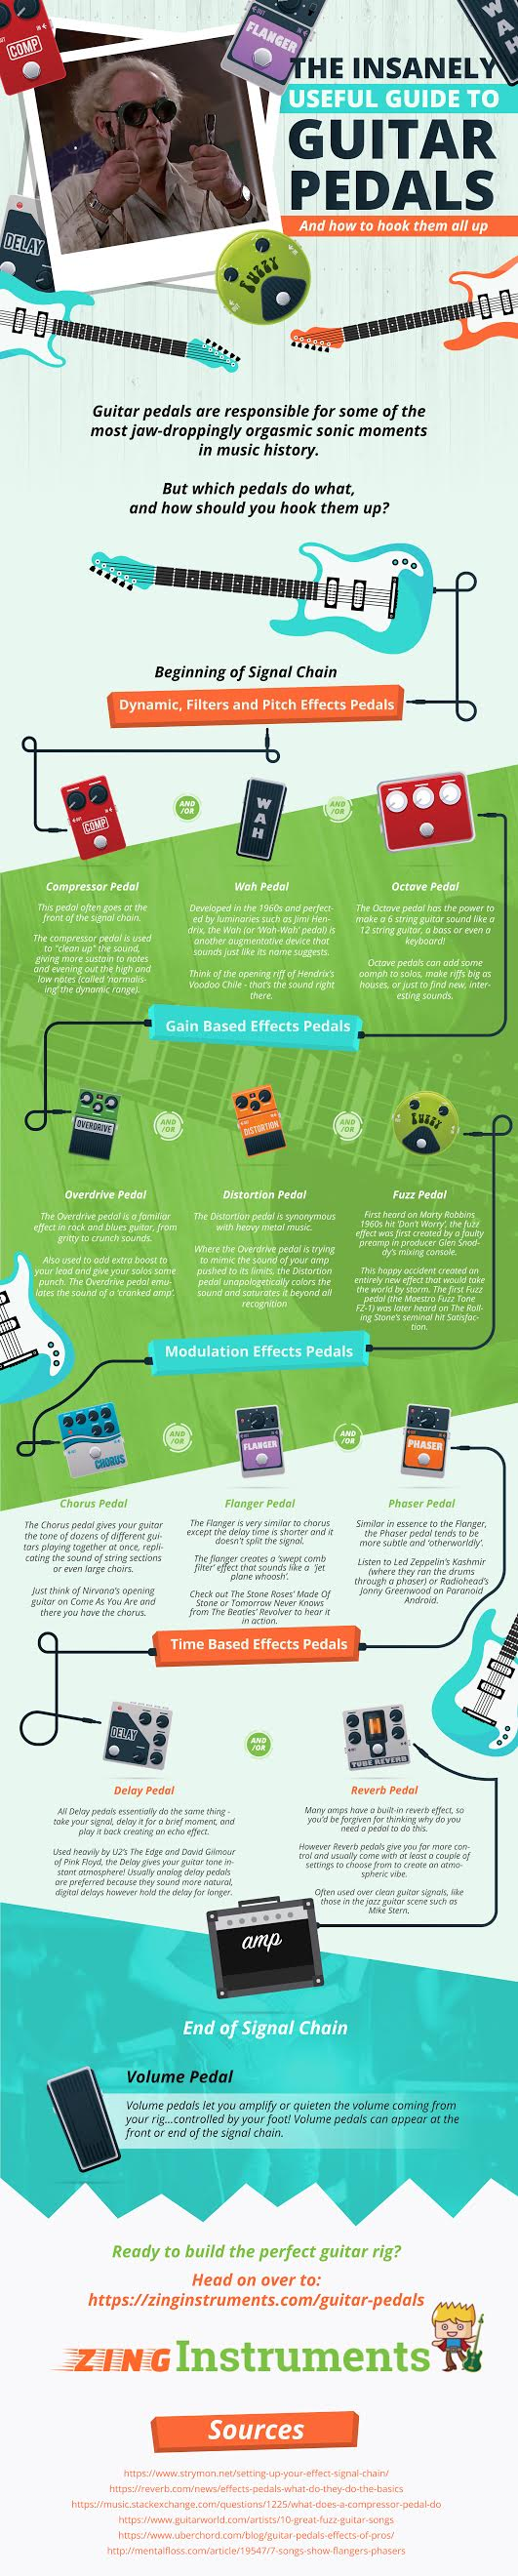 Guitar Effects Pedals Infographic